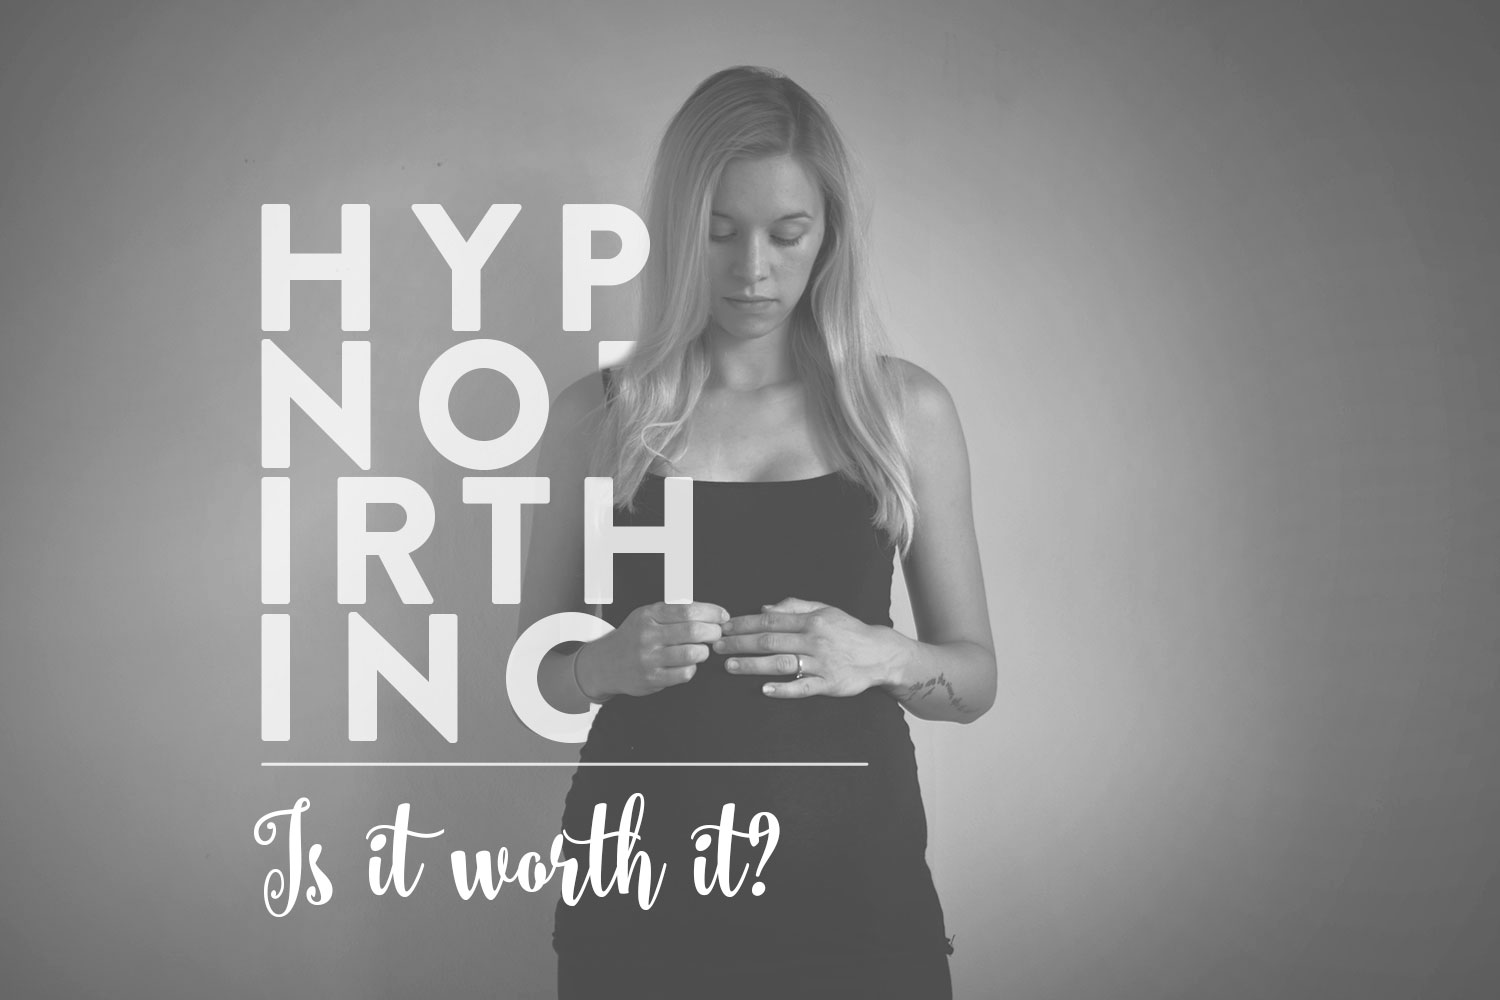 Wessex Hypnobirthing Course; Was it worth it? - Wiltshire including Chippenham, Calne, Malmesbury and Swindon or surrounding areas